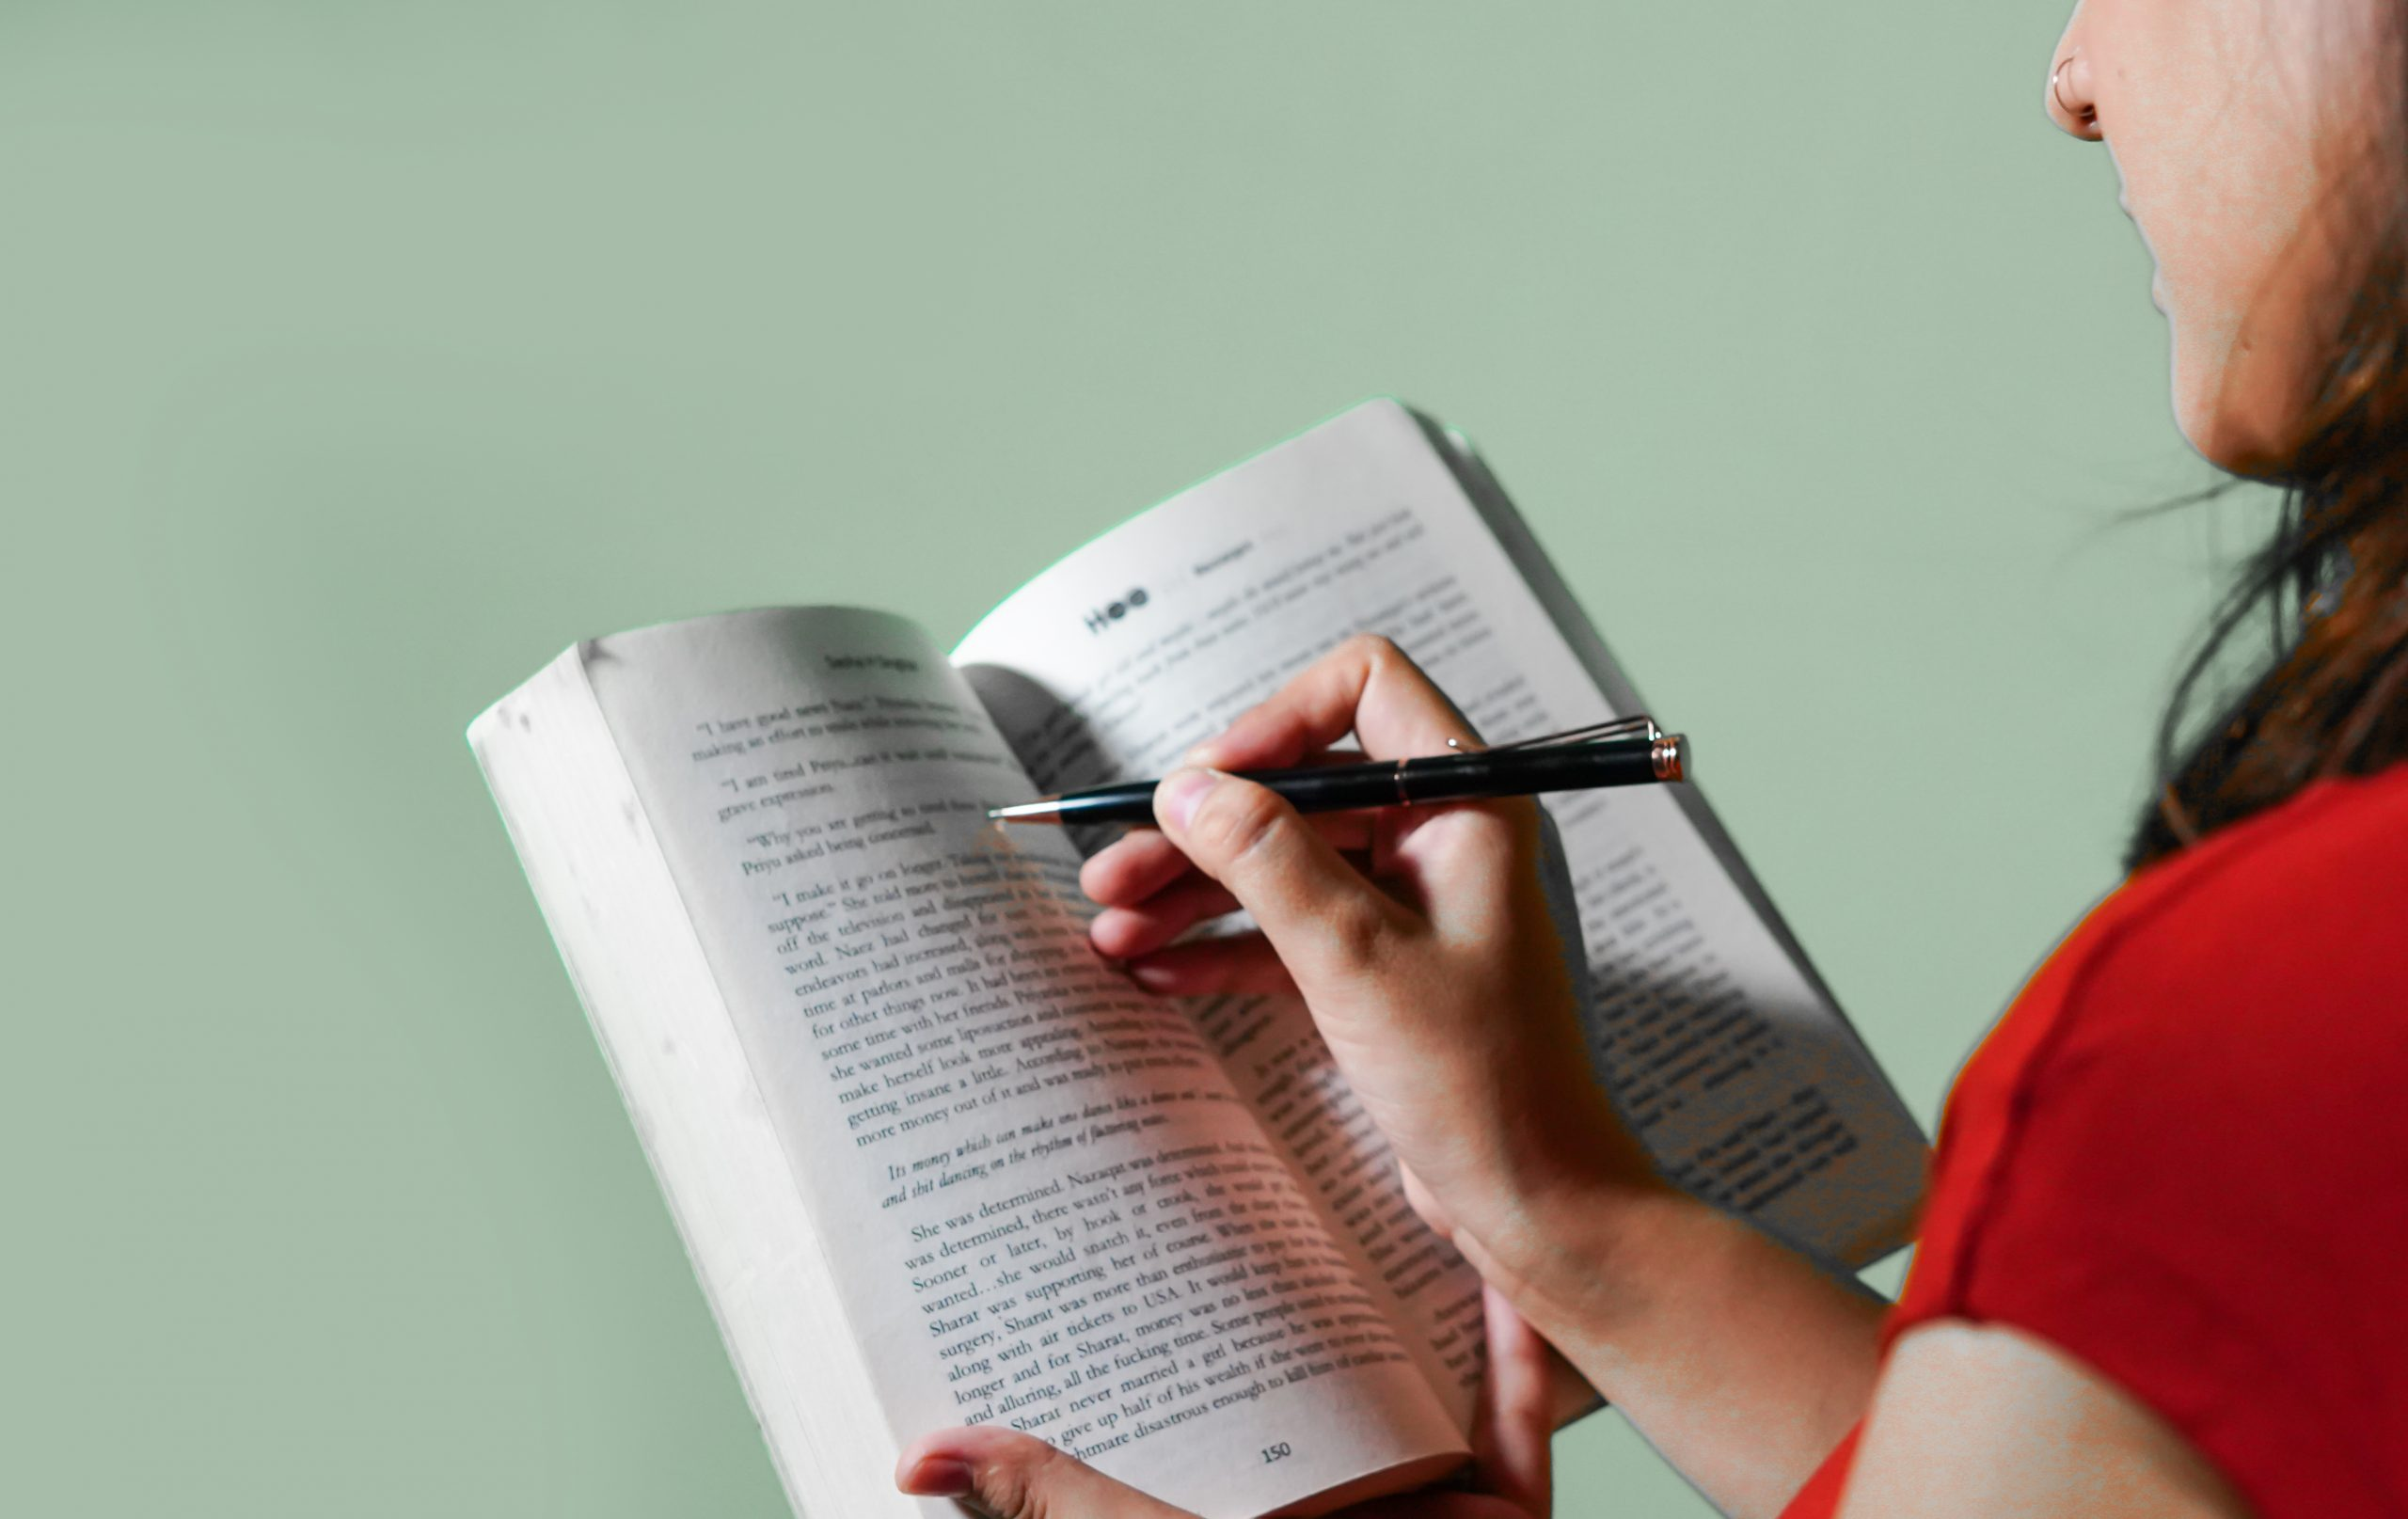 Girl highlighting lines in a book